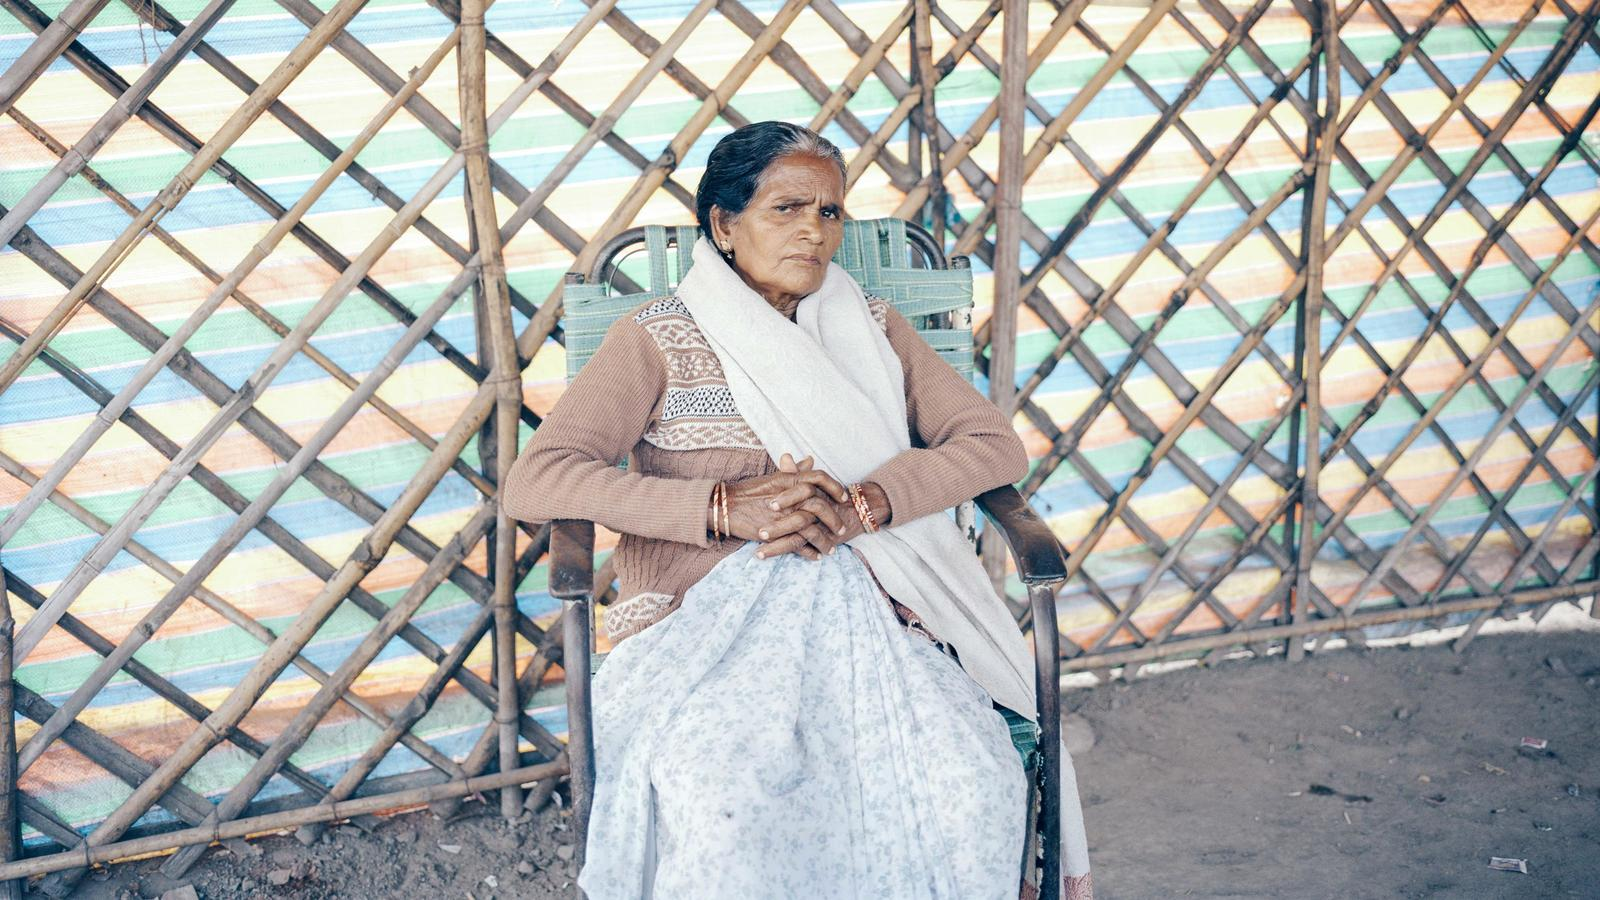 Kalavati, who has dedicated her life to building toilets in India's slums.